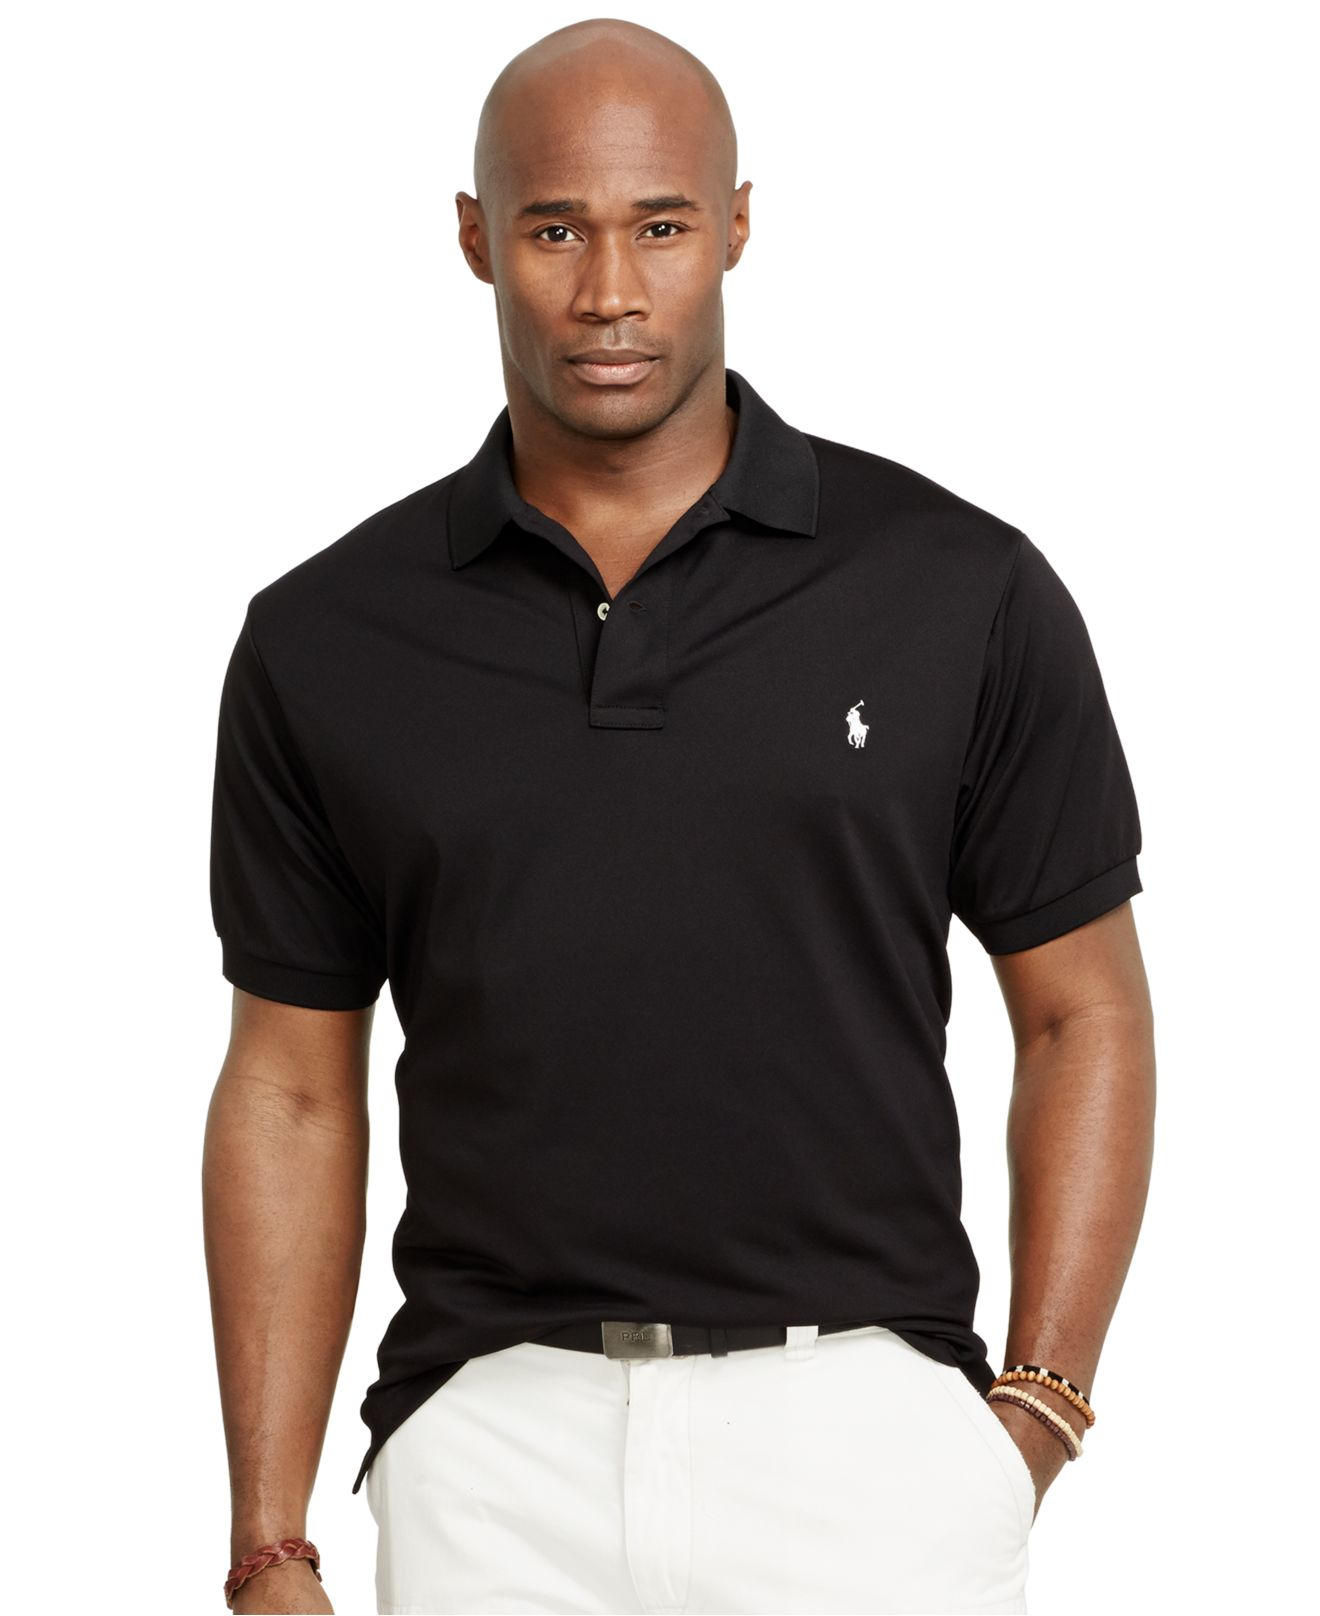 Ralph lauren polo men mesh shirts for Man in polo shirt